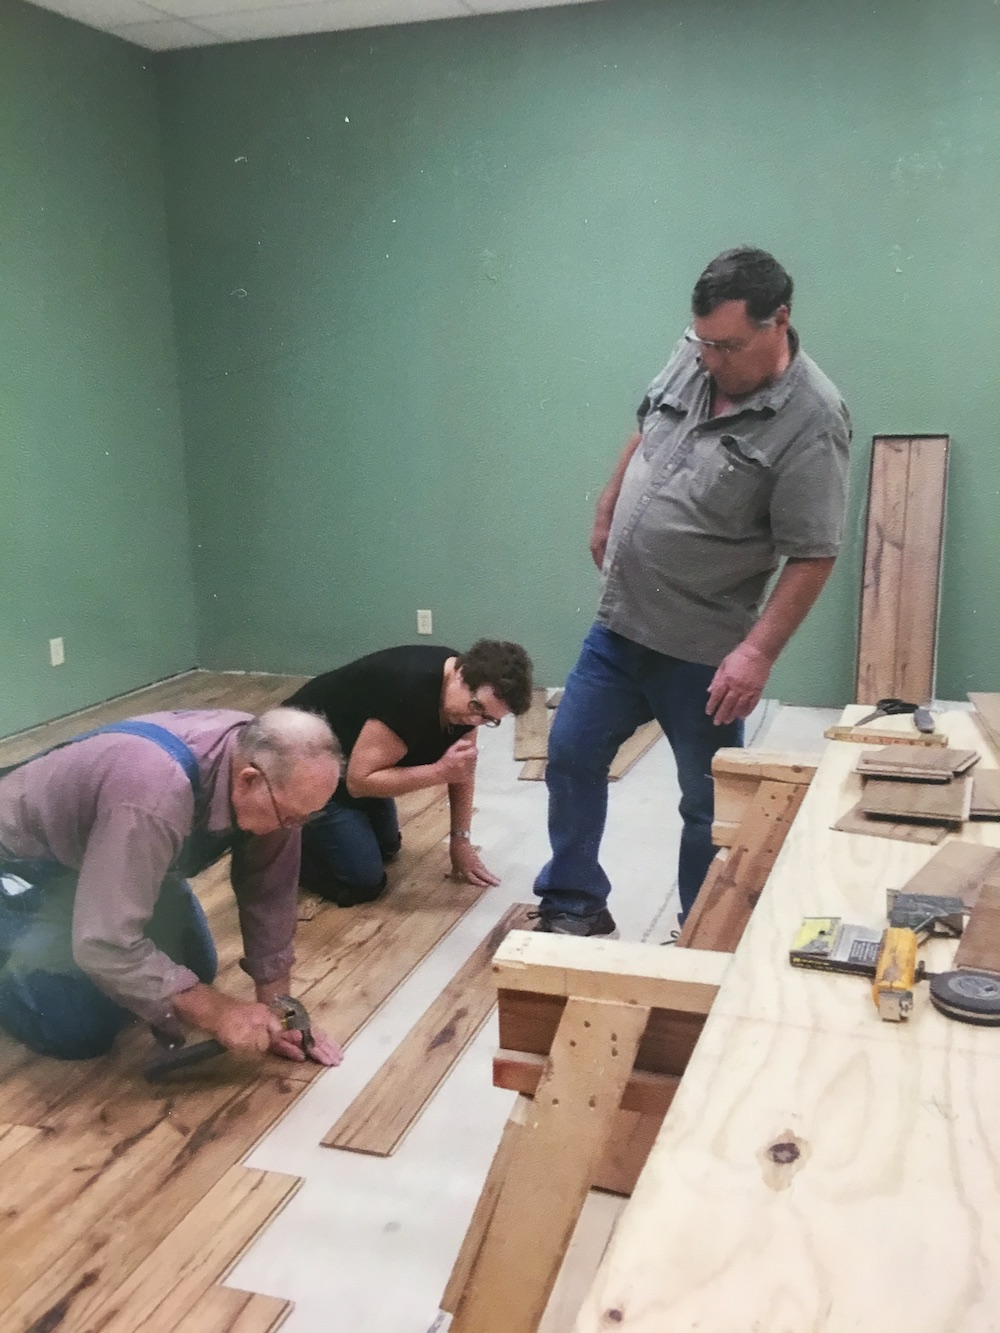 Flooring started! Wayne Bryan, Saundra & Charles Dunn placing flooring over wood floor (flooring donated by Lowe's), July 2017